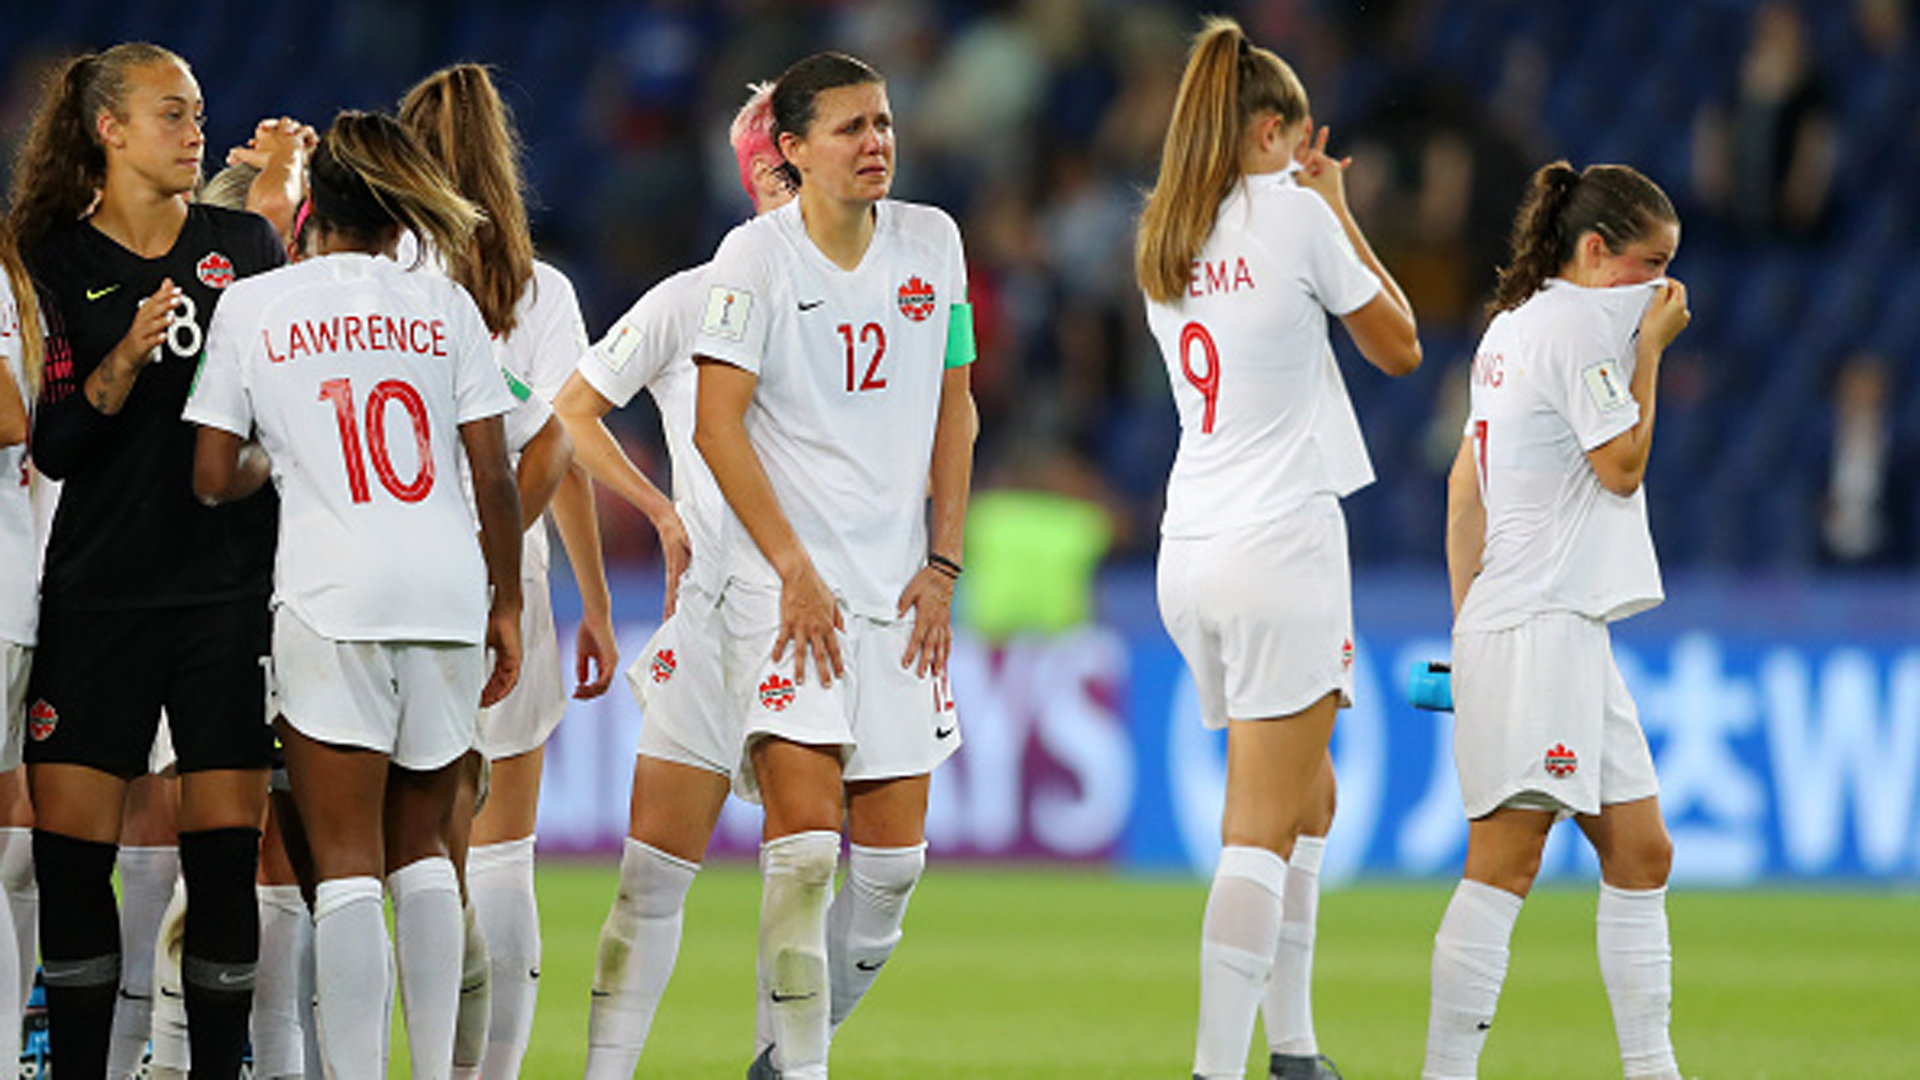 b0b346dce Canada eliminated from FIFA Women's World Cup with loss to Sweden - TSN.ca